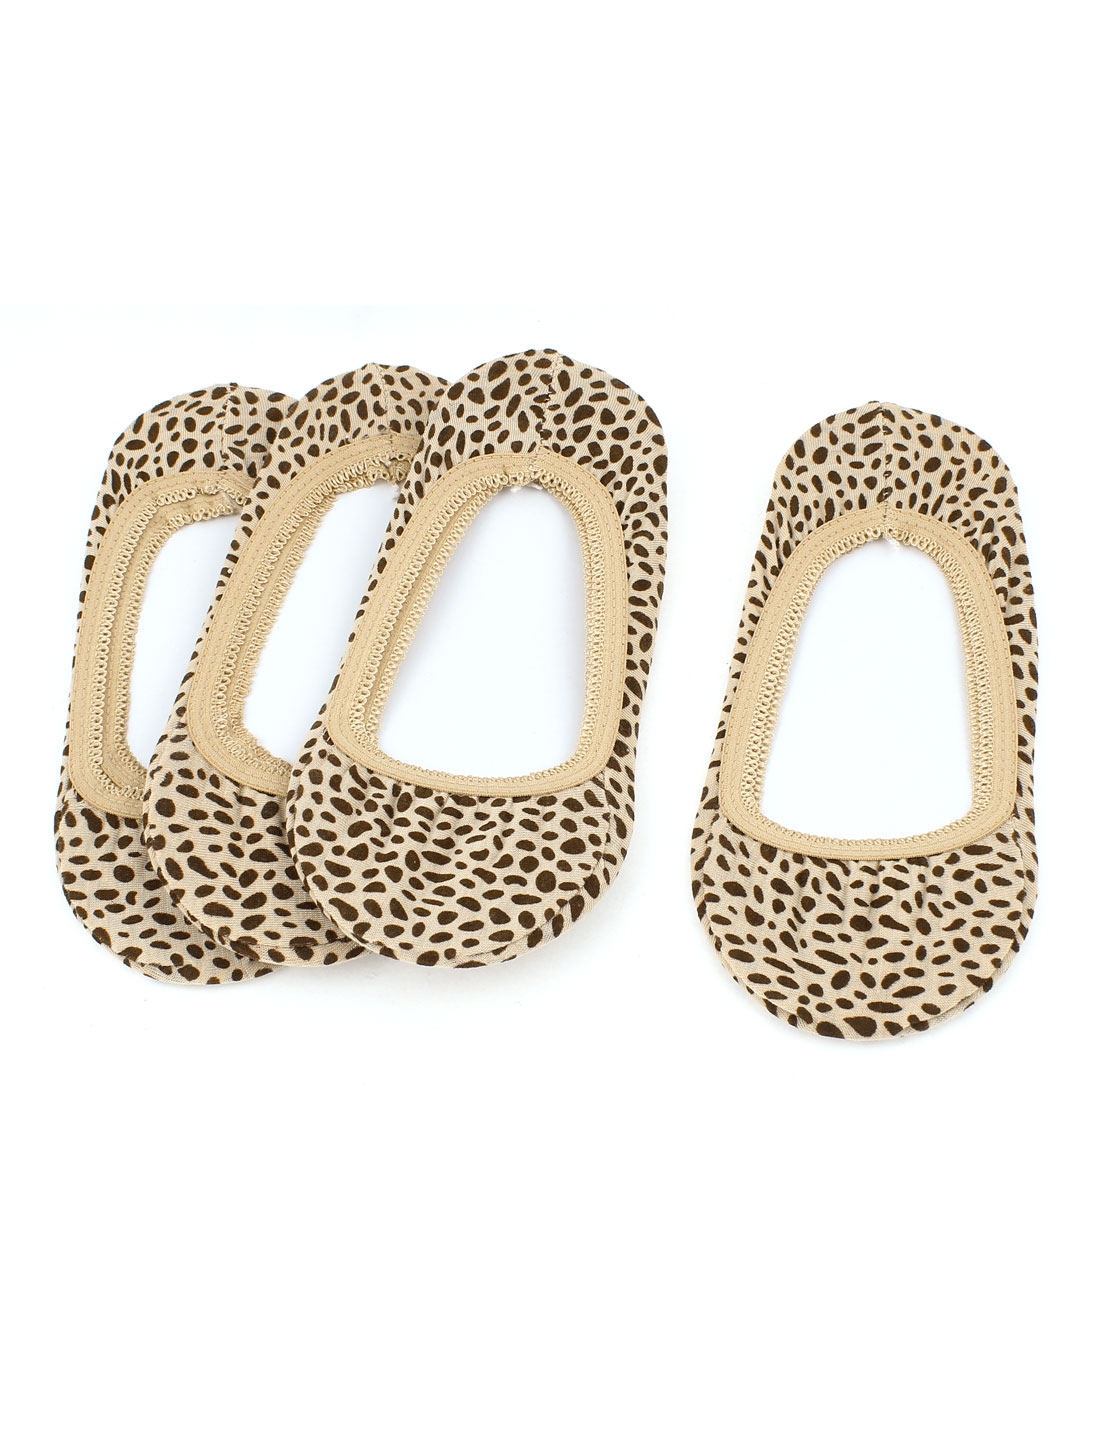 4Pairs Leopard Prints Cotton Blends Elastic Casual Invisible Low Cut Heels Loafer Liner Boat Footie Socks Socken Khaki for Woman